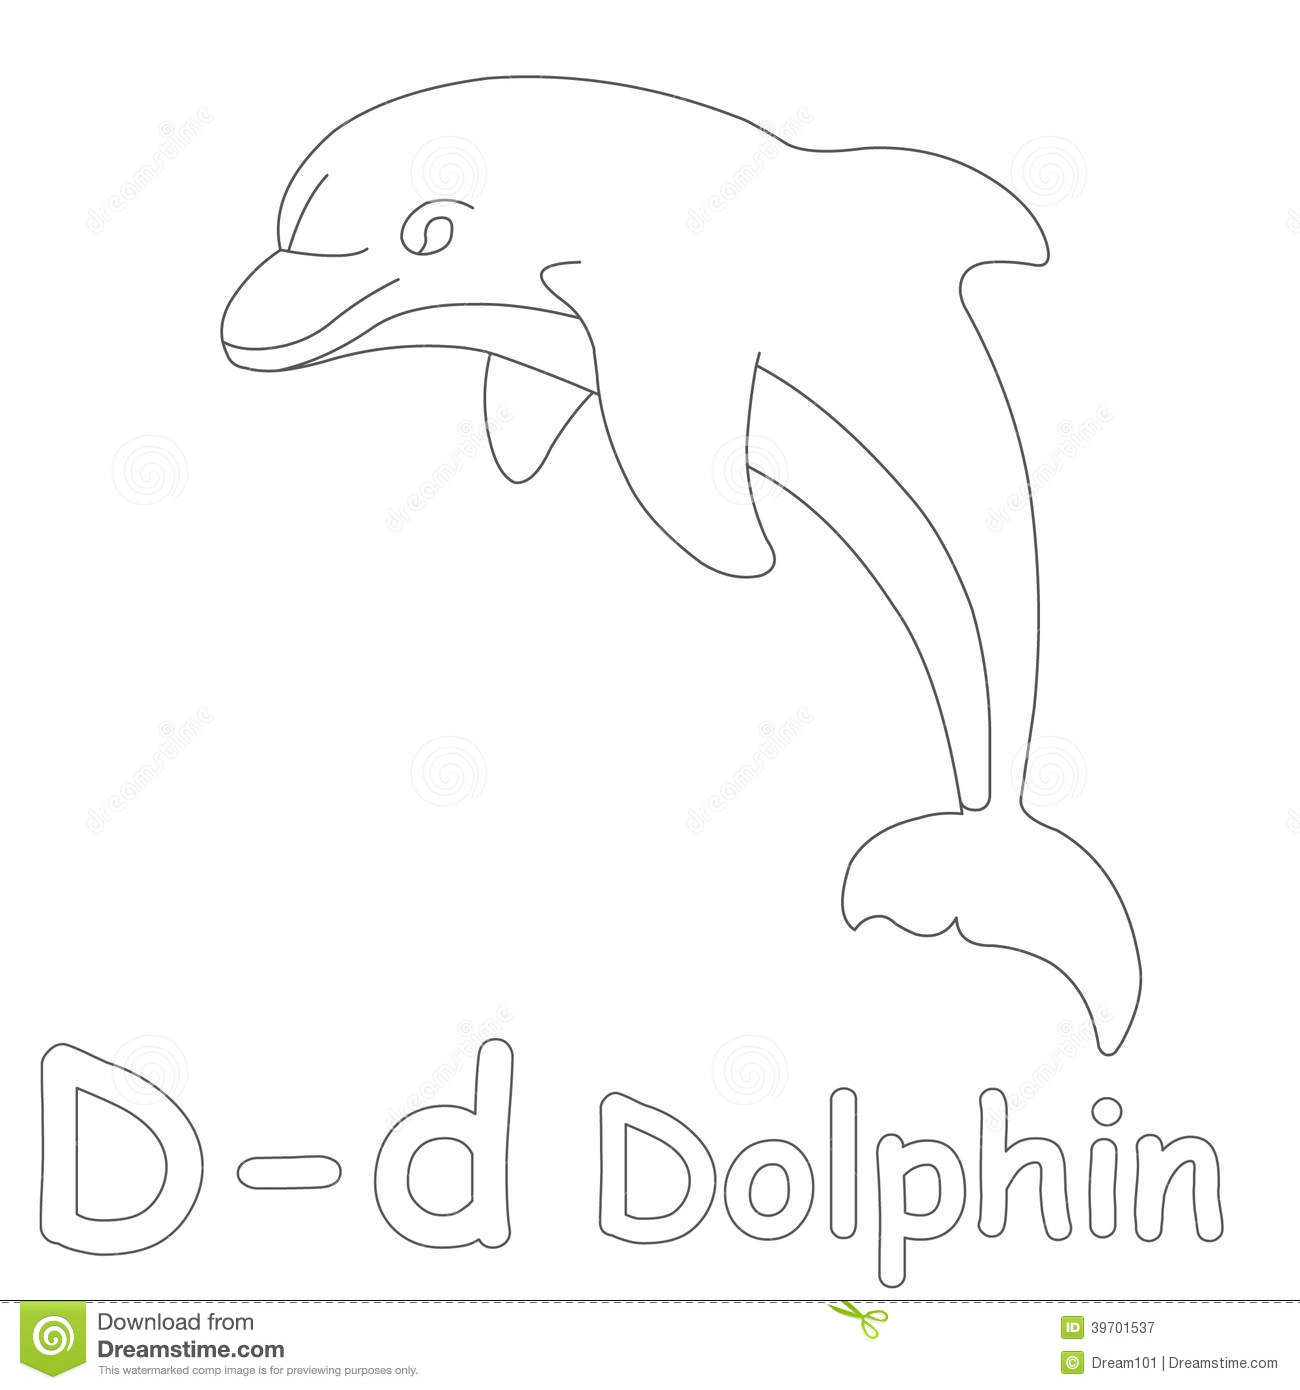 d for dolphin coloring page stock illustration image 39701537